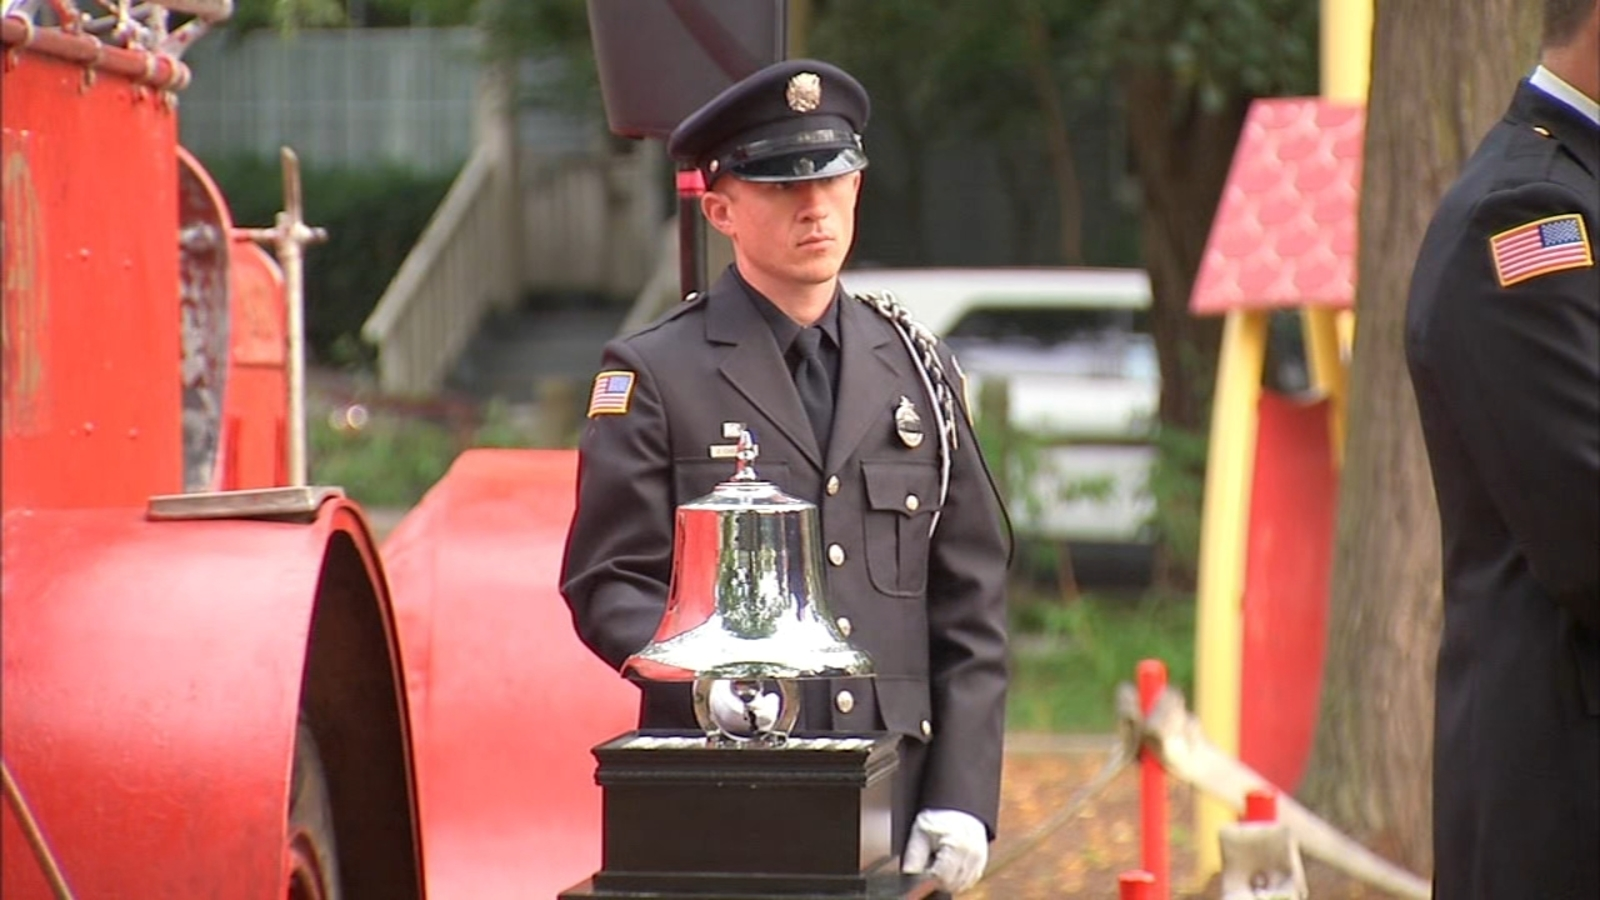 Remembering 9/11: Chicago area ceremonies mark somber anniversary